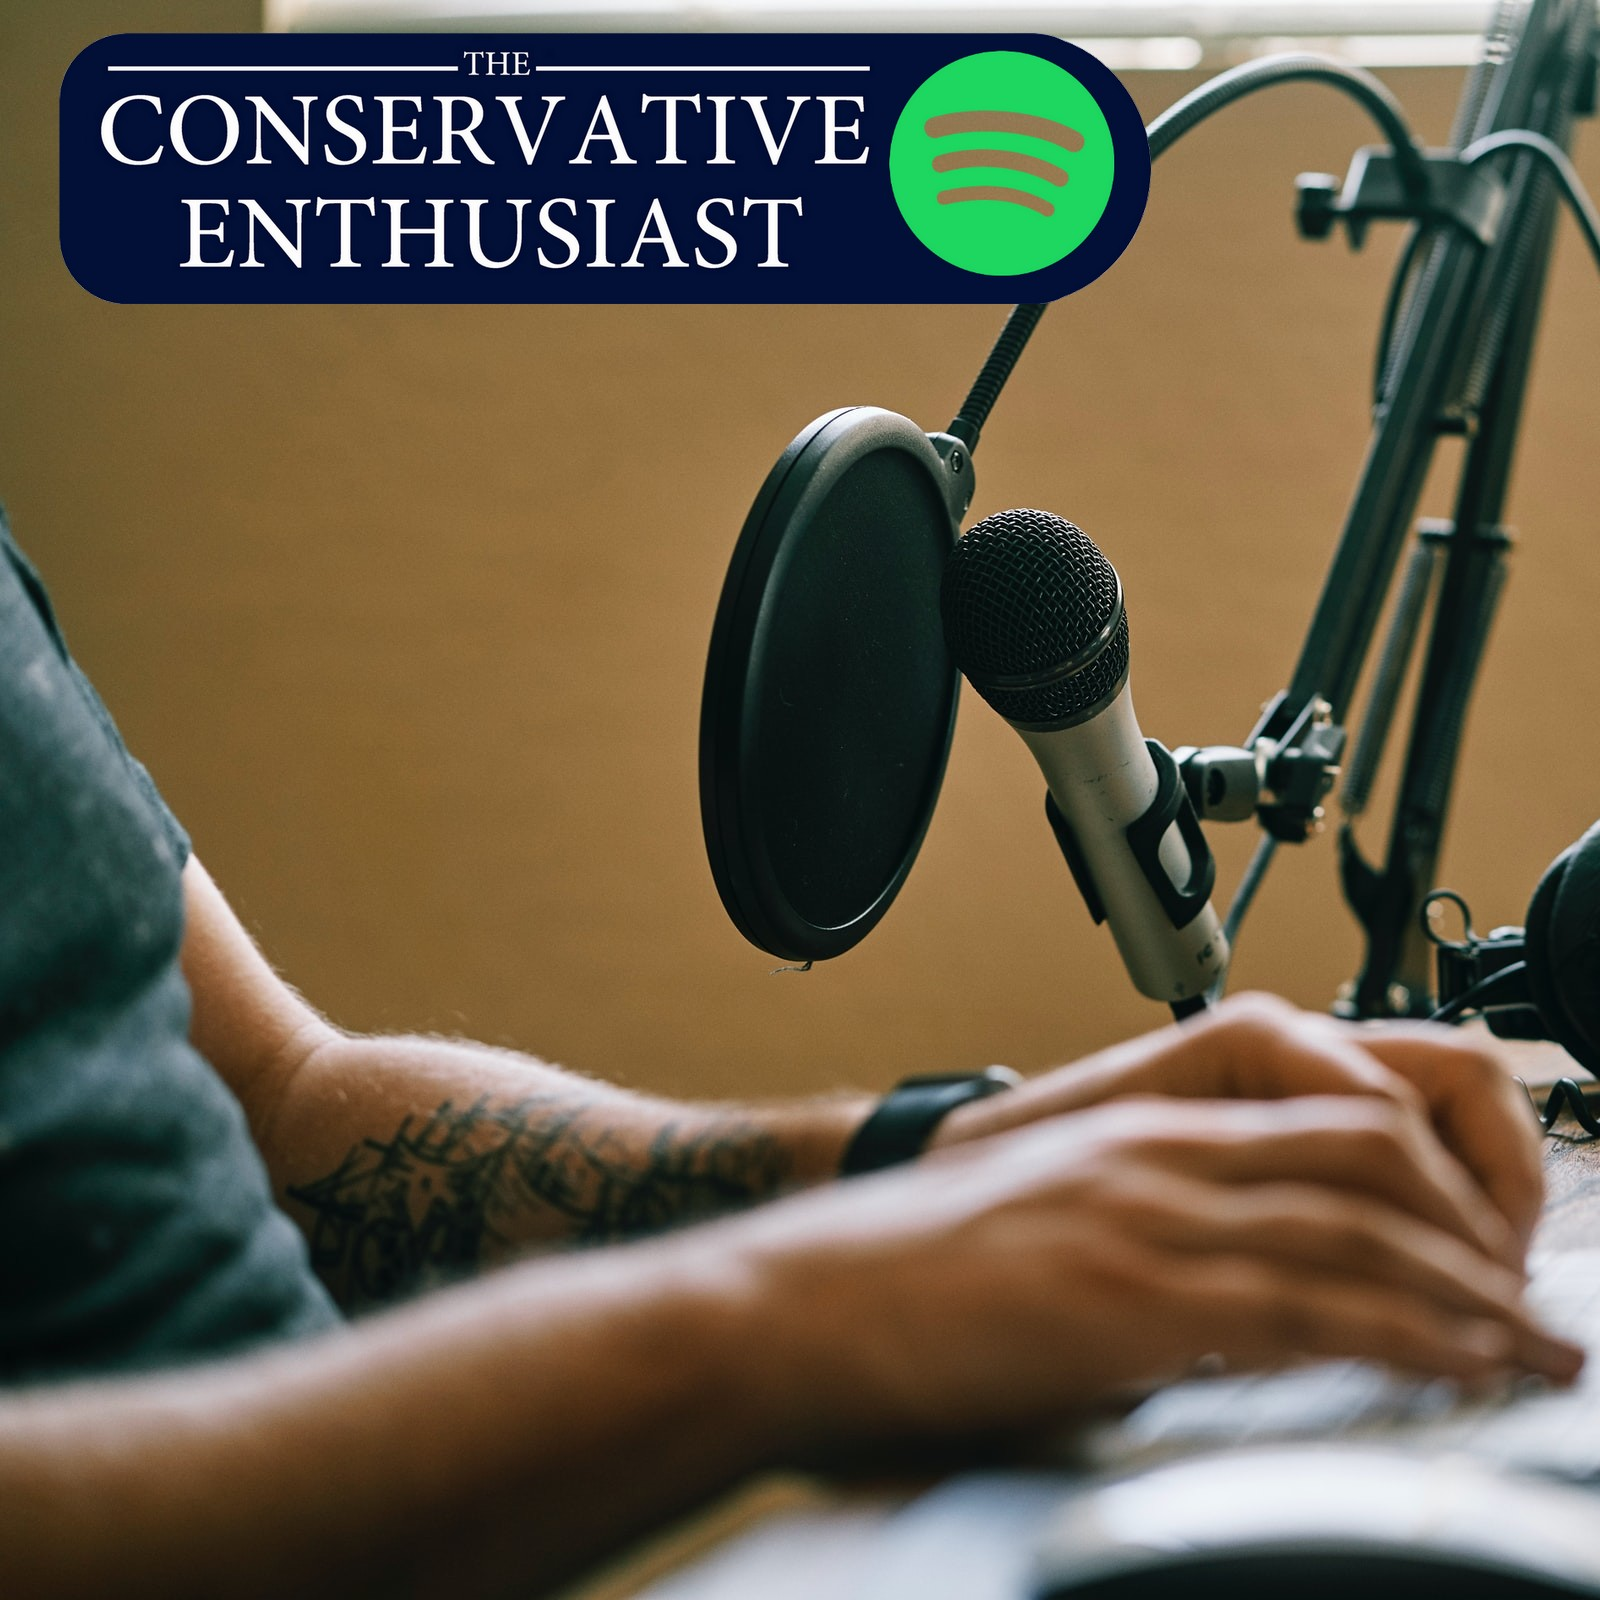 SPOTIFY THE CONSERVATIVE ENTHUSIAST